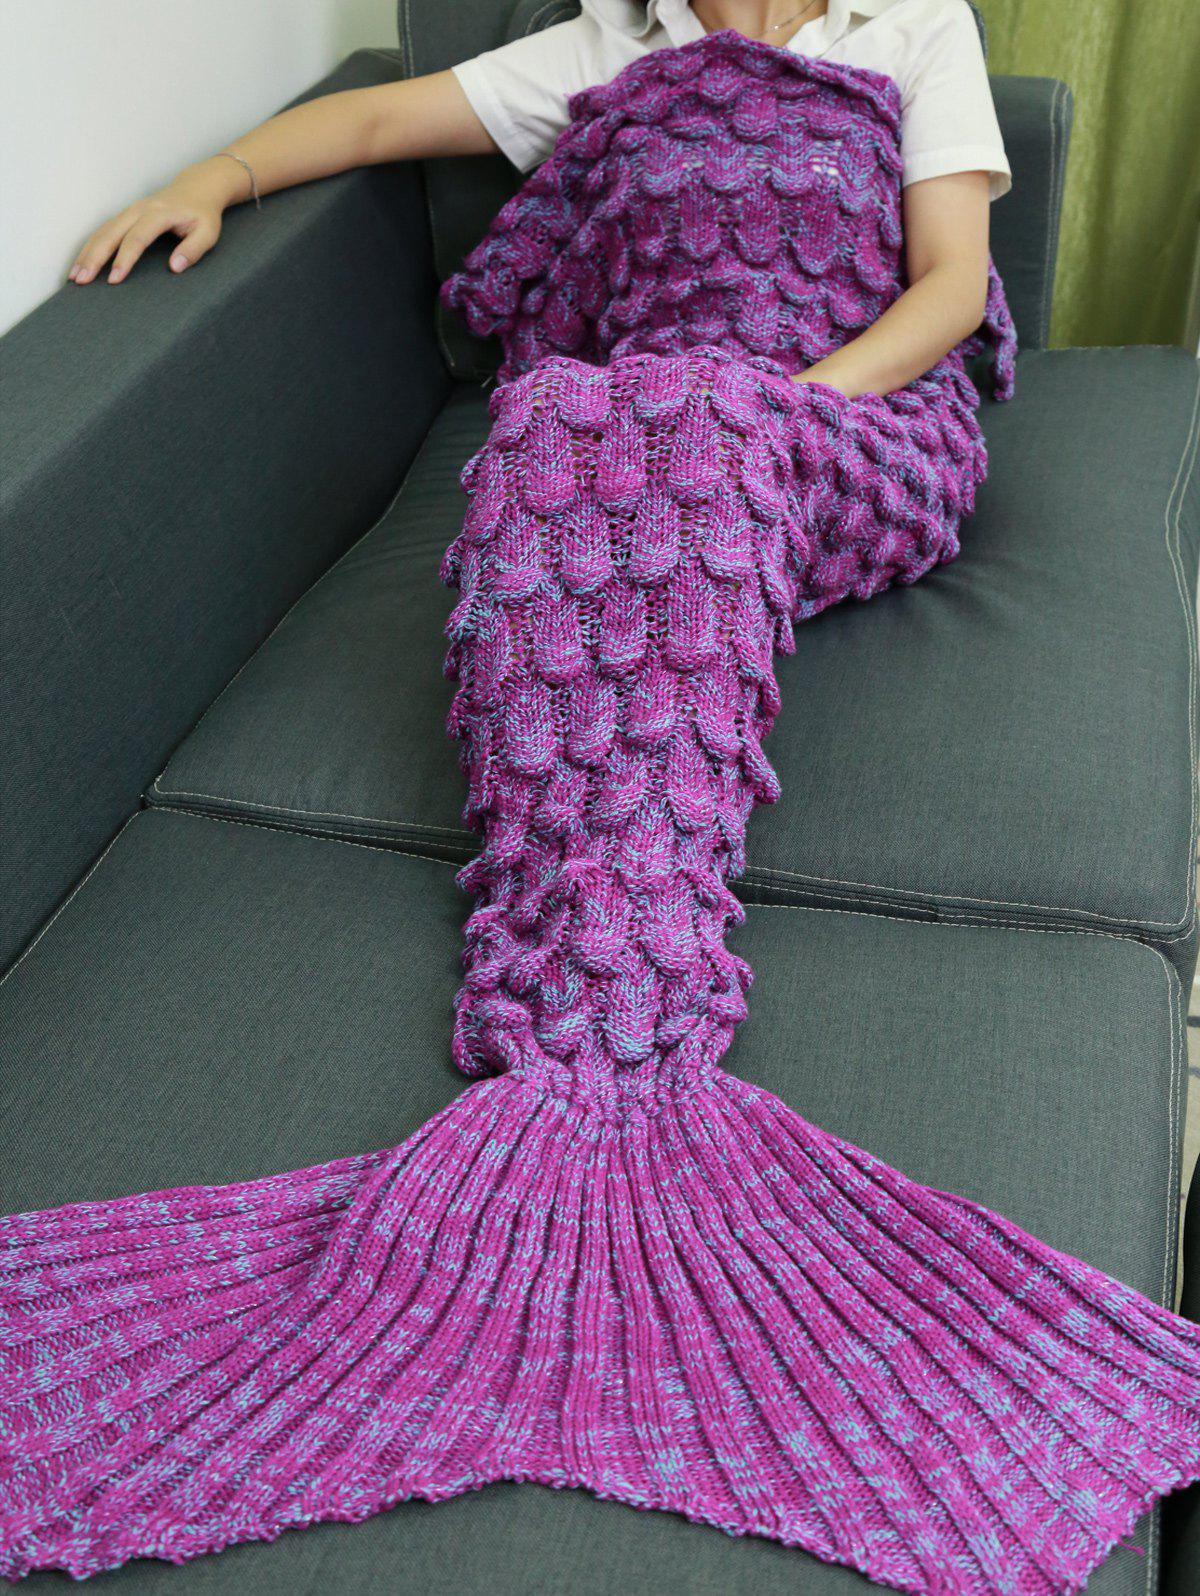 Soft Knitting Fish Scales Design Mermaid Tail Style Blanket - LIGHT PURPLE